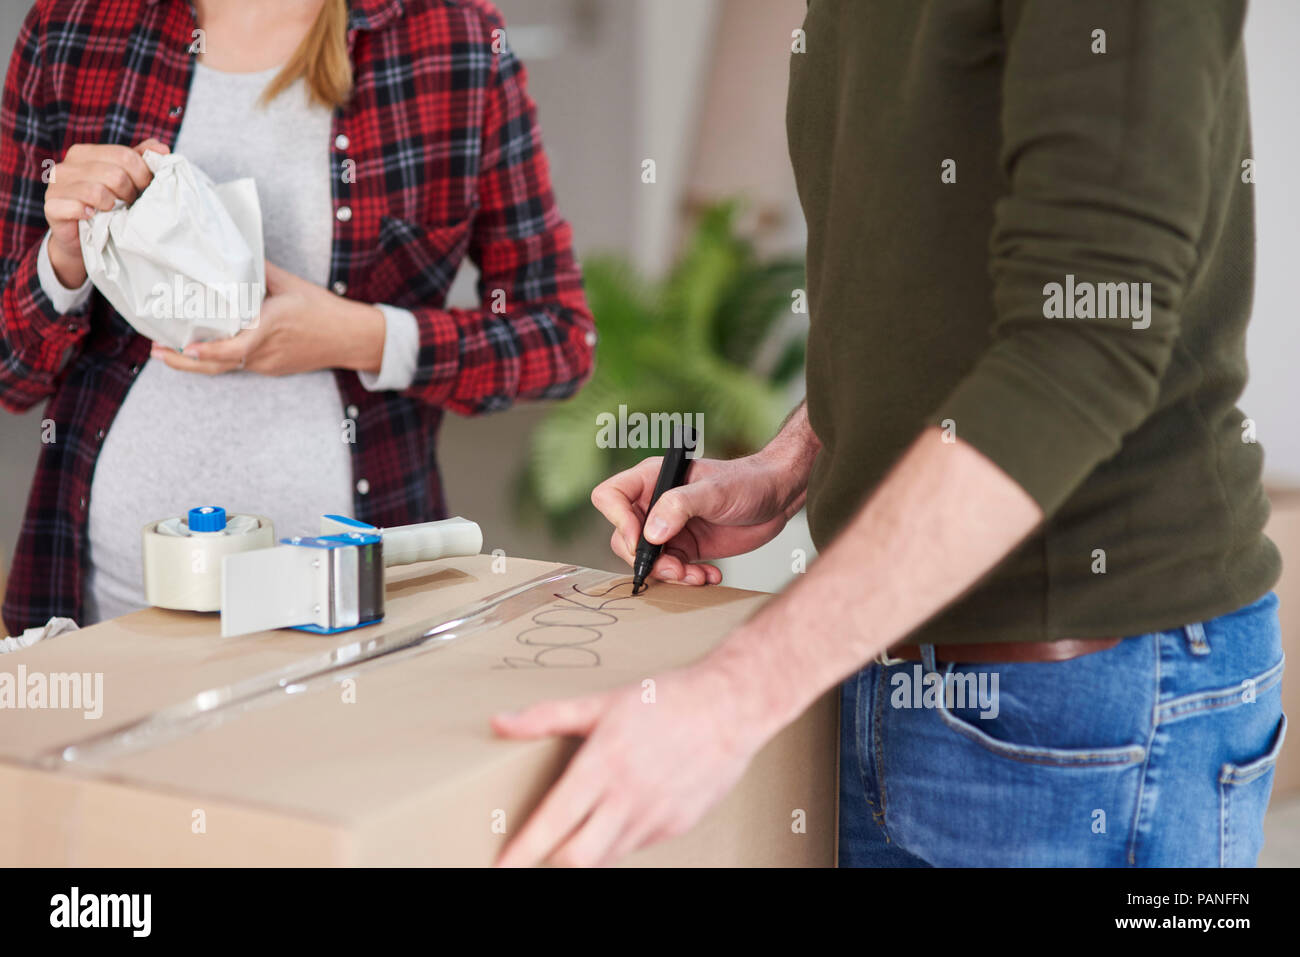 Couple moving house packing and labelling cardboard boxes - Stock Image